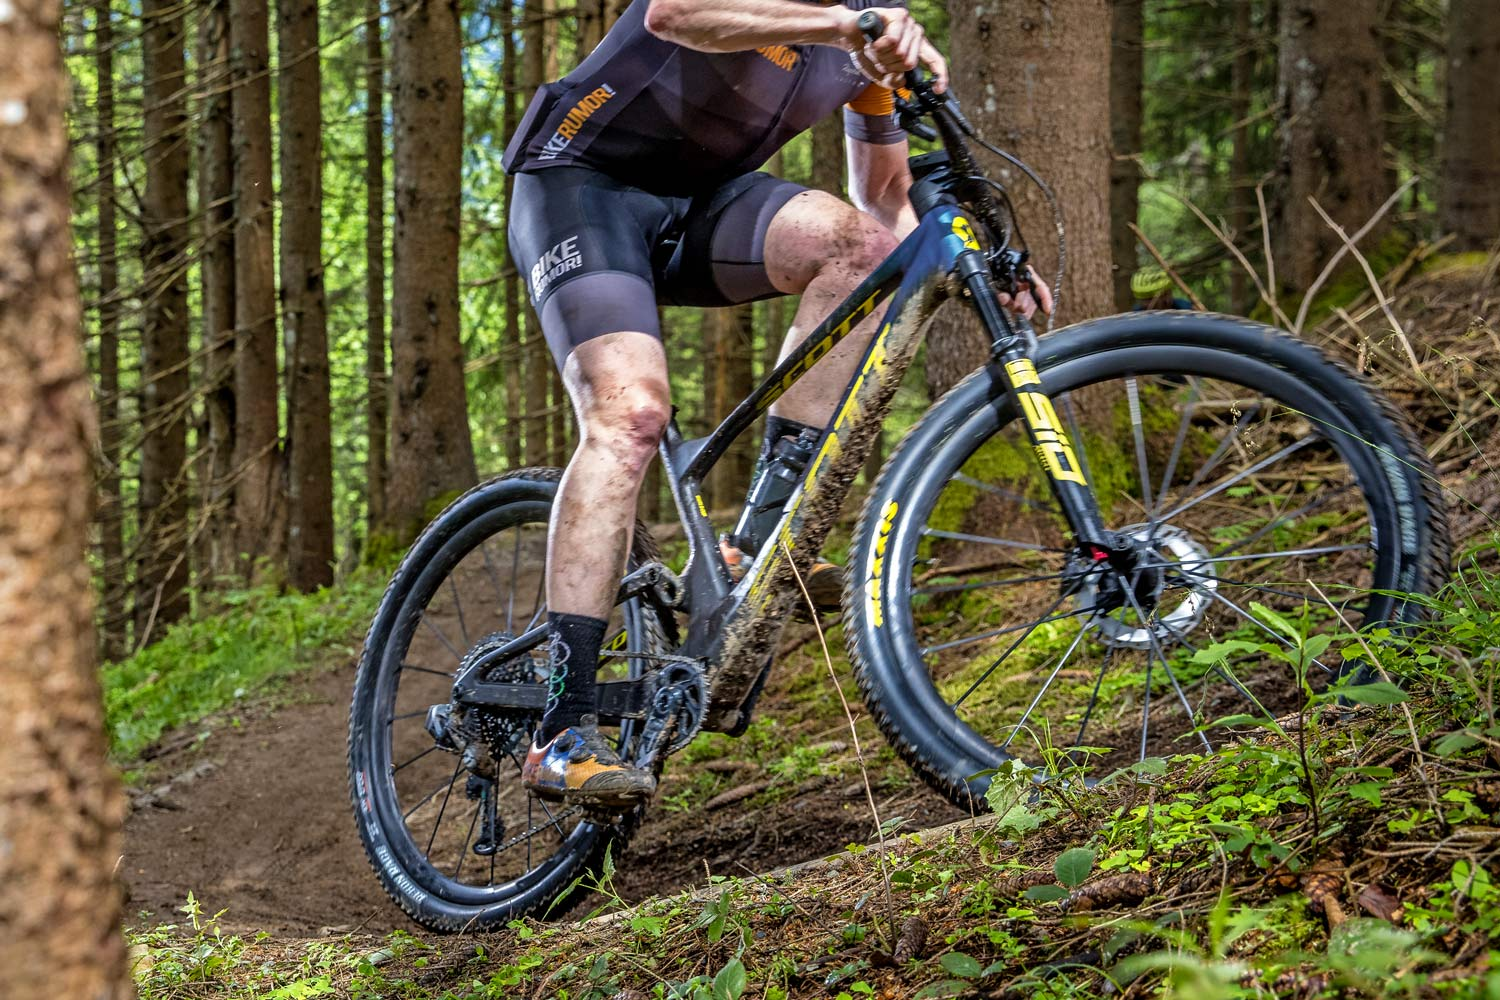 2022 Scott Spark RC & 900 XC trail mountain bikes, light fully-integrated cross-country MTB,climbing